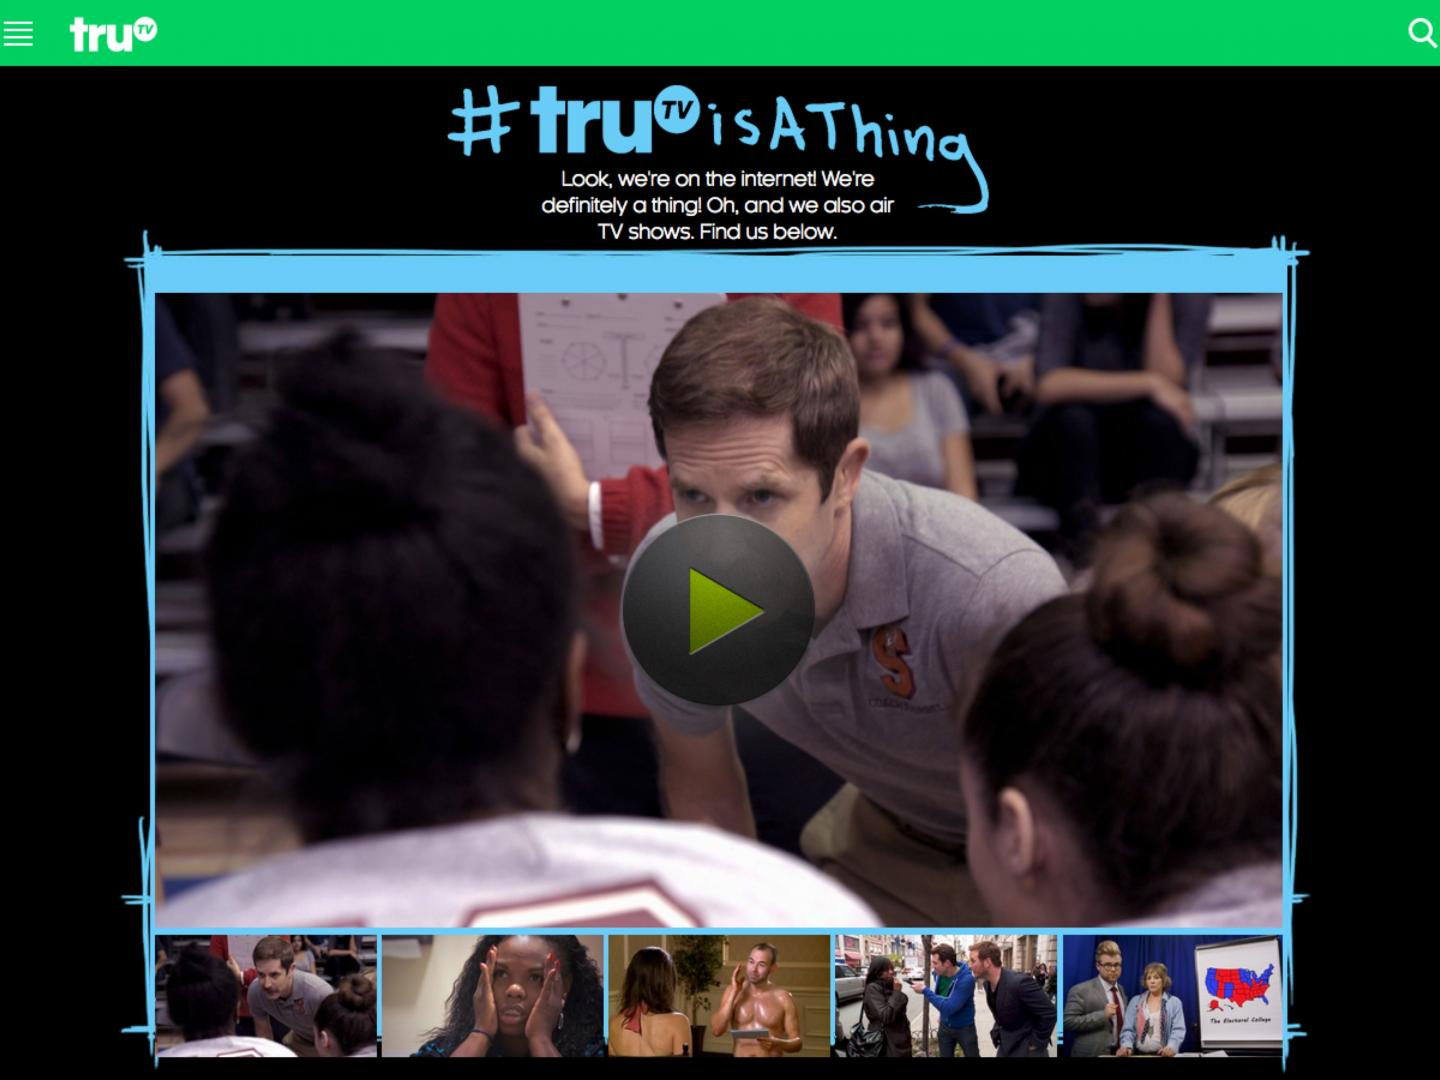 #truTVisAThing Brand Awareness Campaign Thumbnail